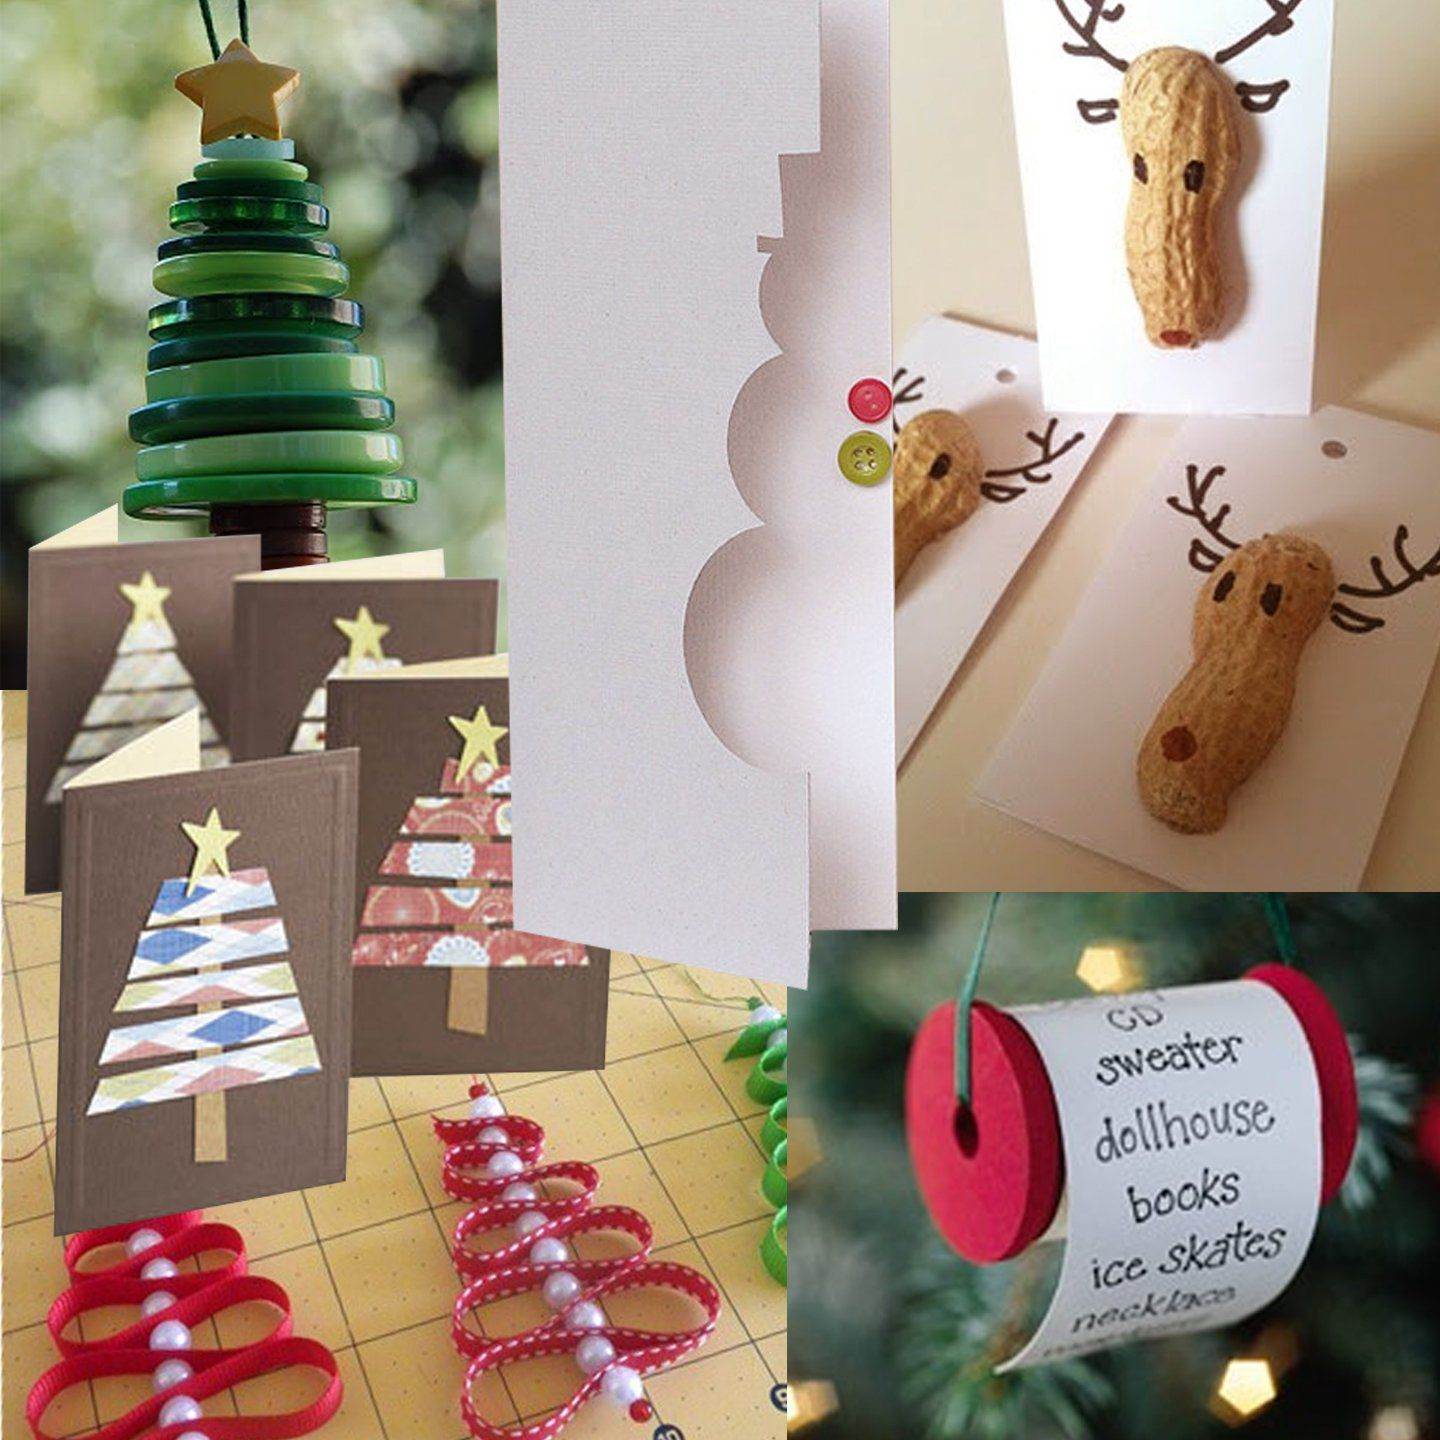 Christmas room ideas diy decorations xmas decorations homemade diy pinterest christmas - Rm decoration pic ...